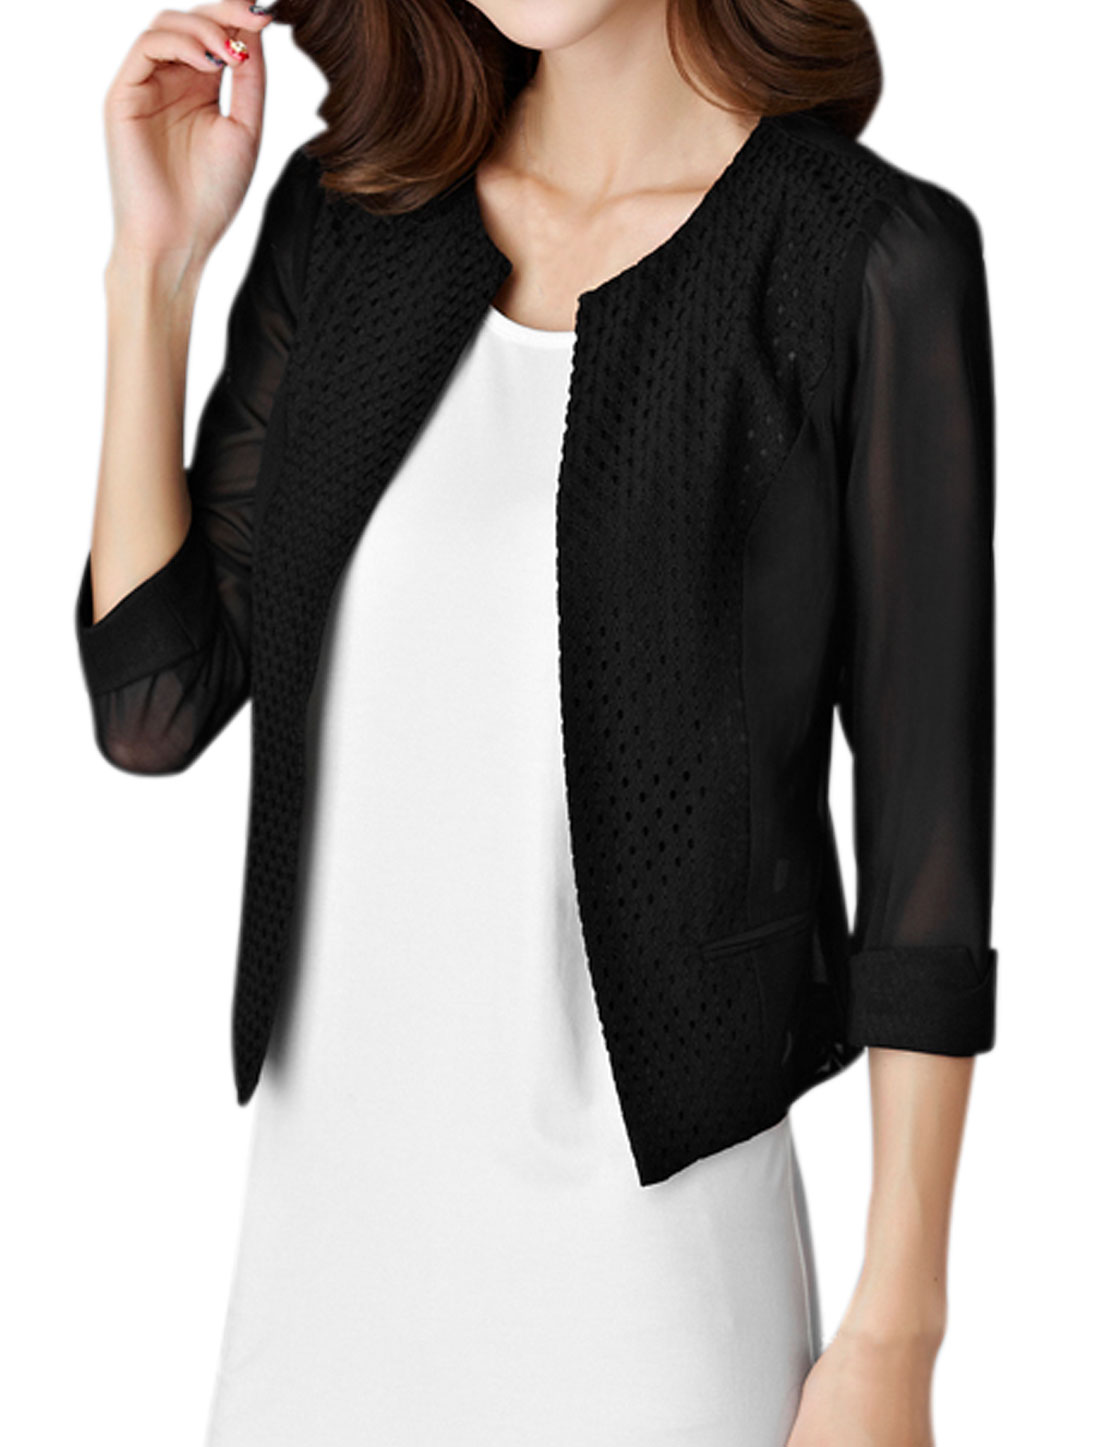 Women Paneled 3/4 Sleeve Front Opening Mesh Jacket Black S